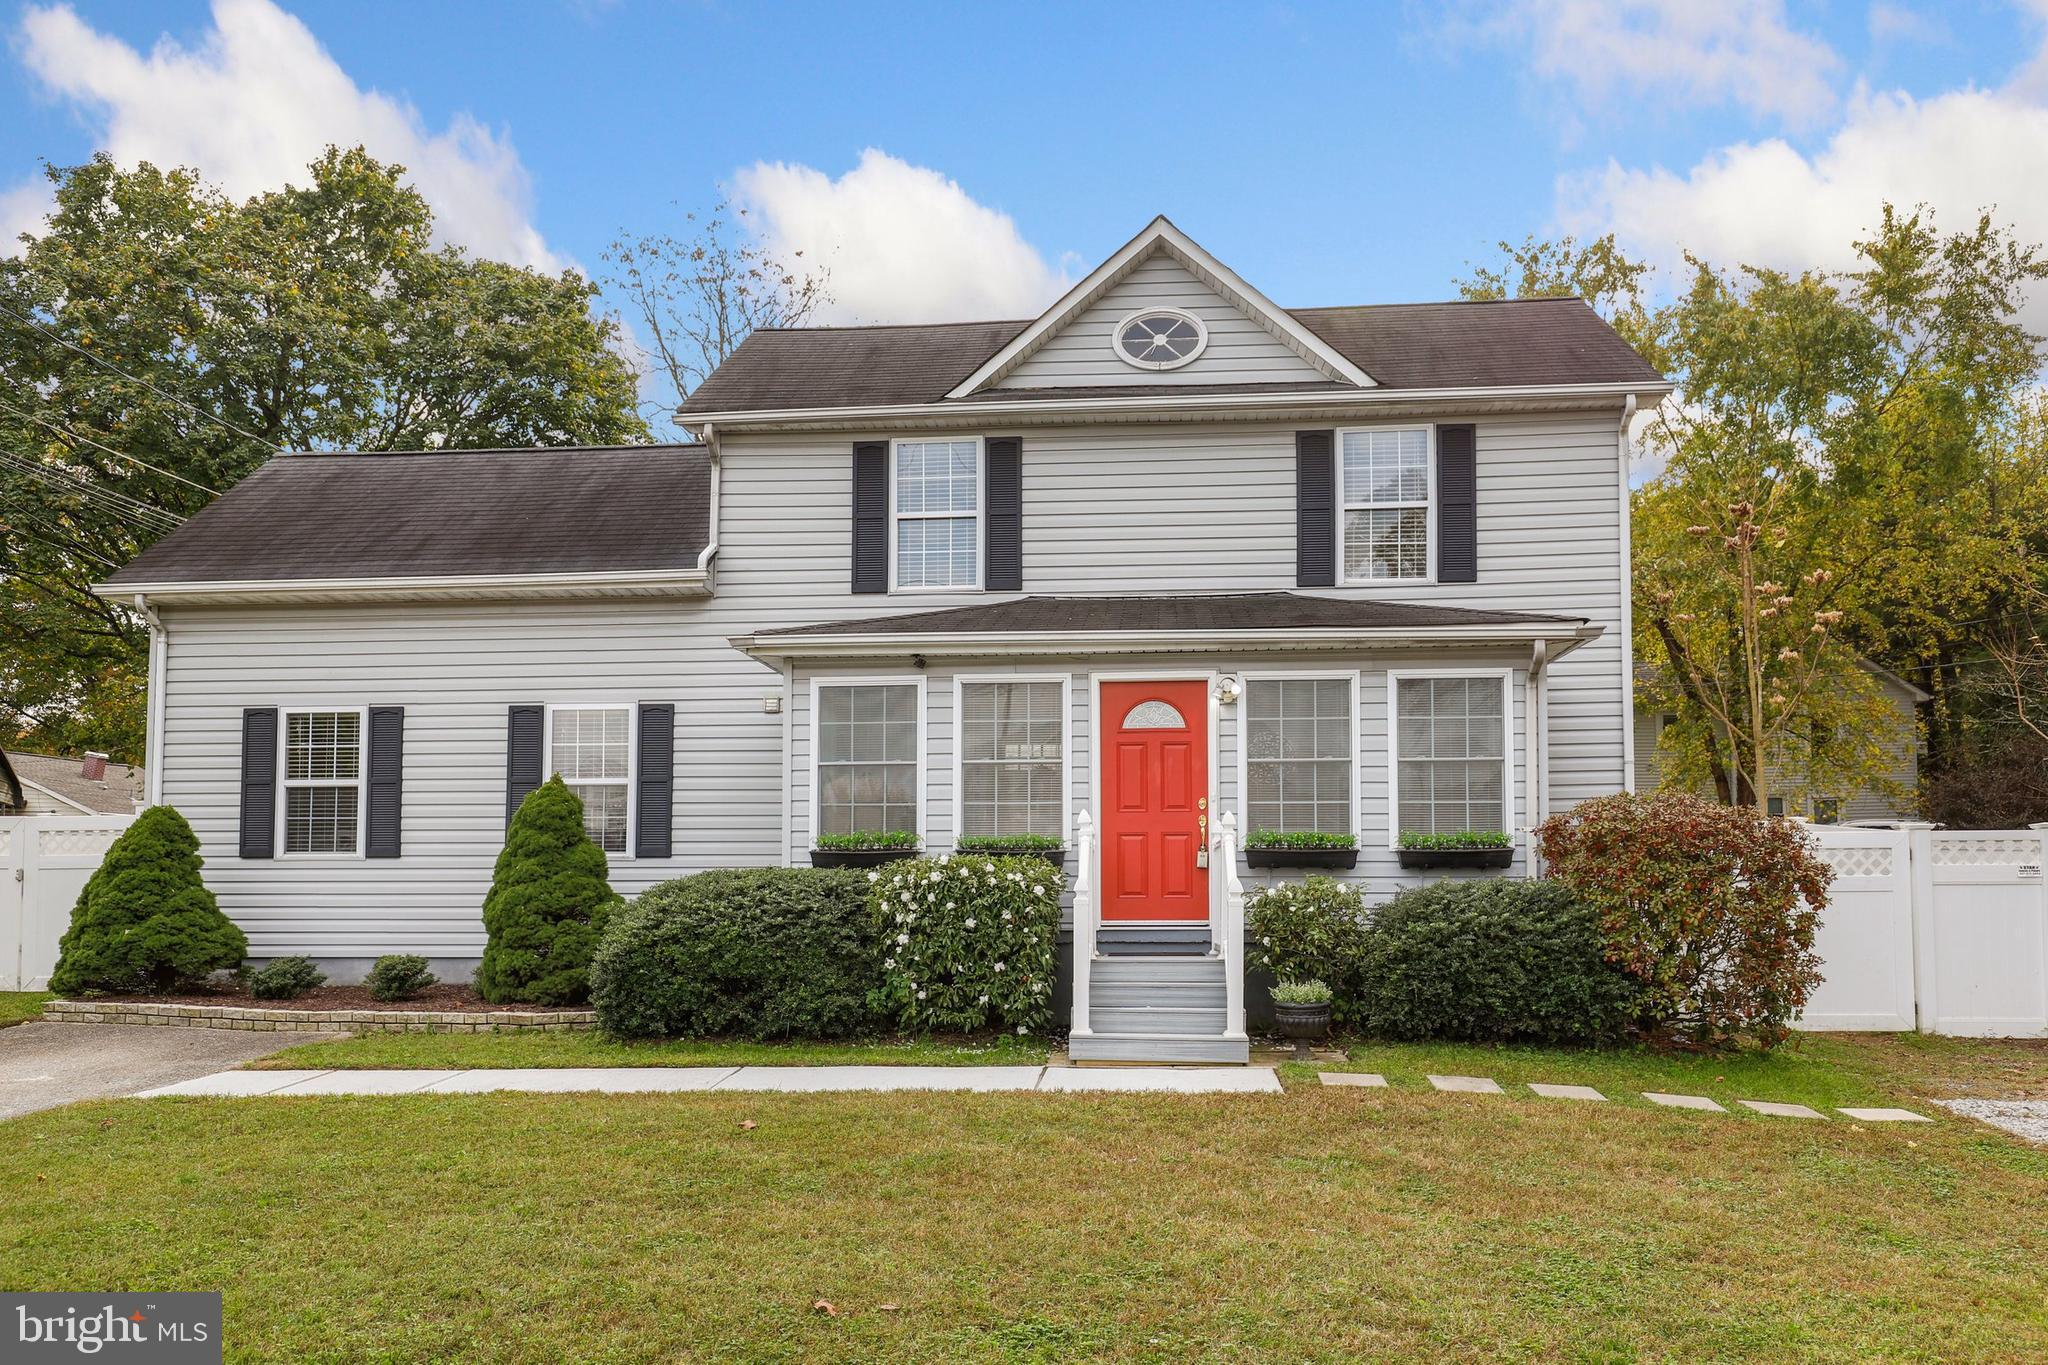 Fantastic 3 Bedroom 2 Full Bath in Odenton with No HOA!  Updated kitchen with granite countertops an